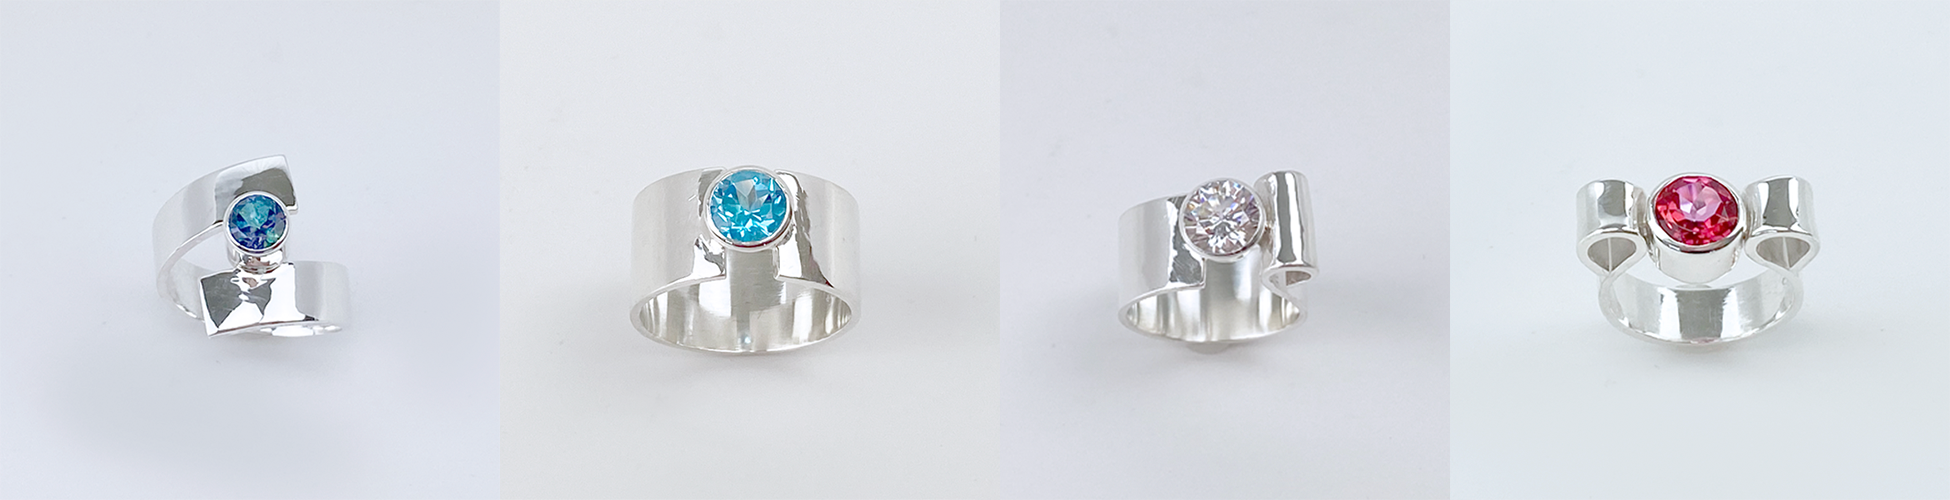 MONOLISA Ring Collection - Made in California